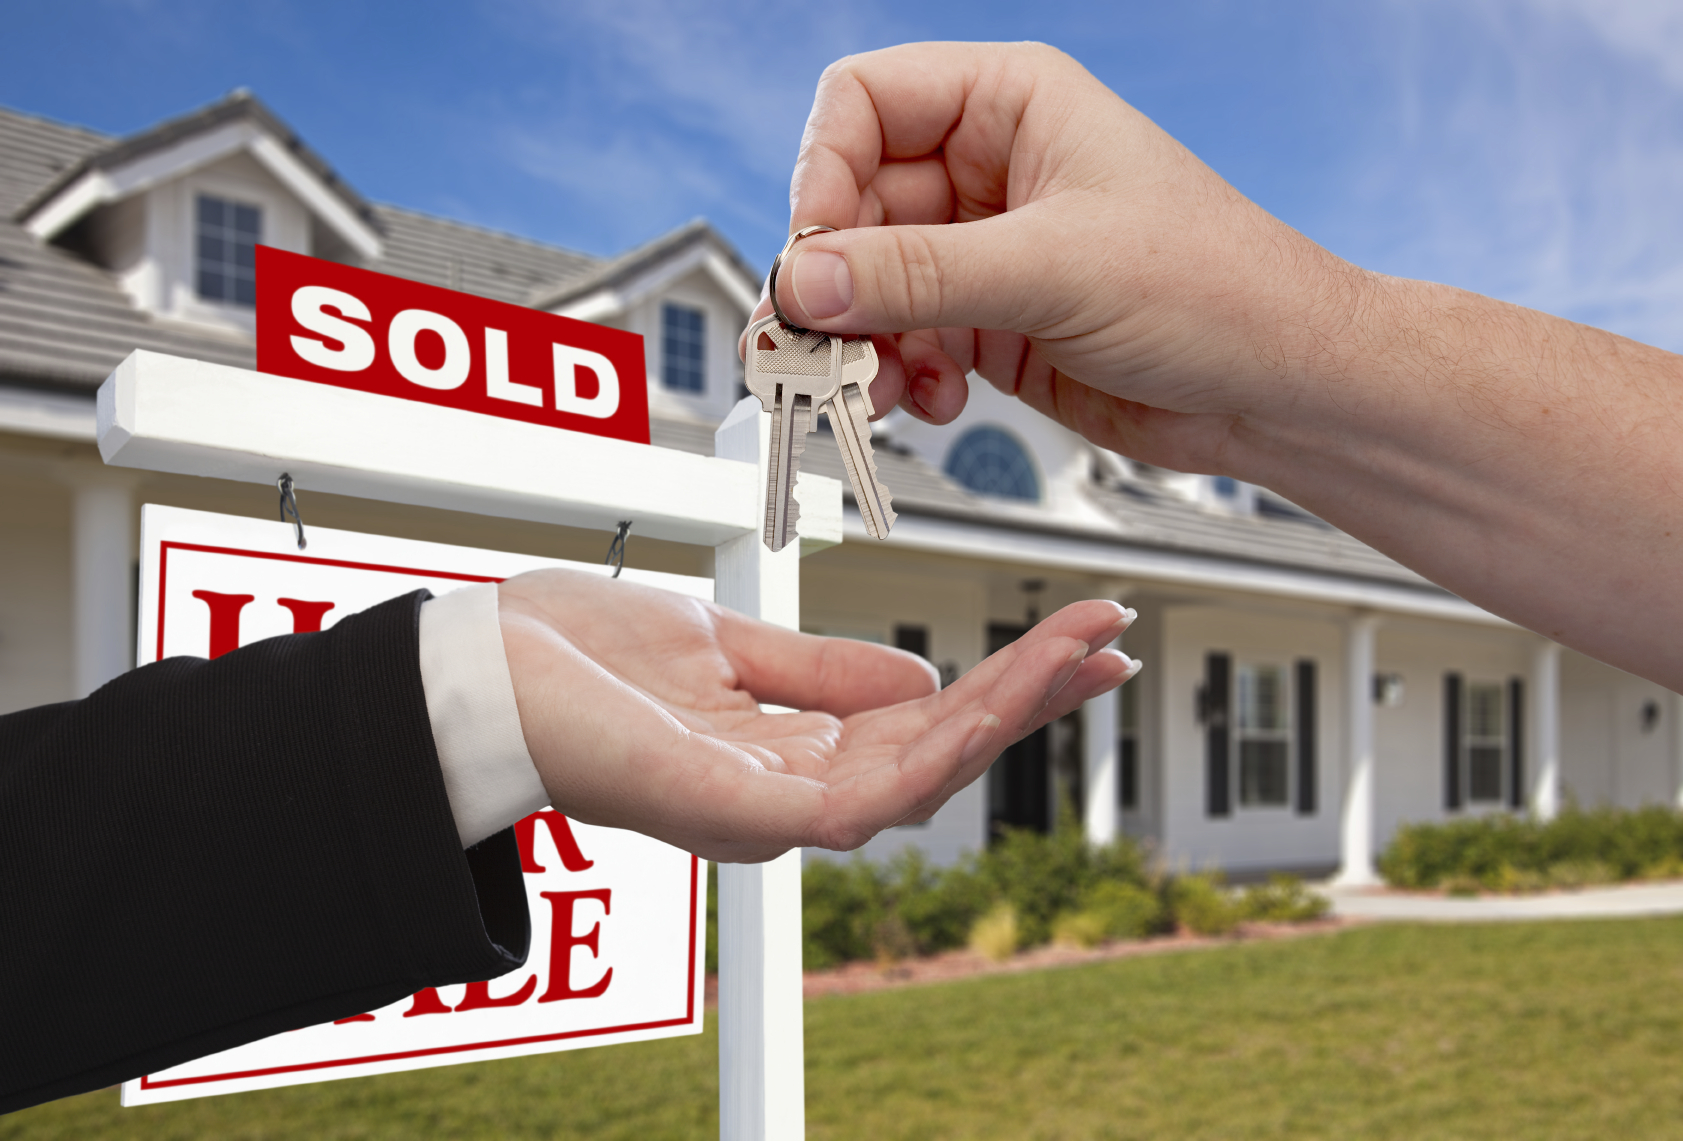 How to Sell Property Fast for Cash